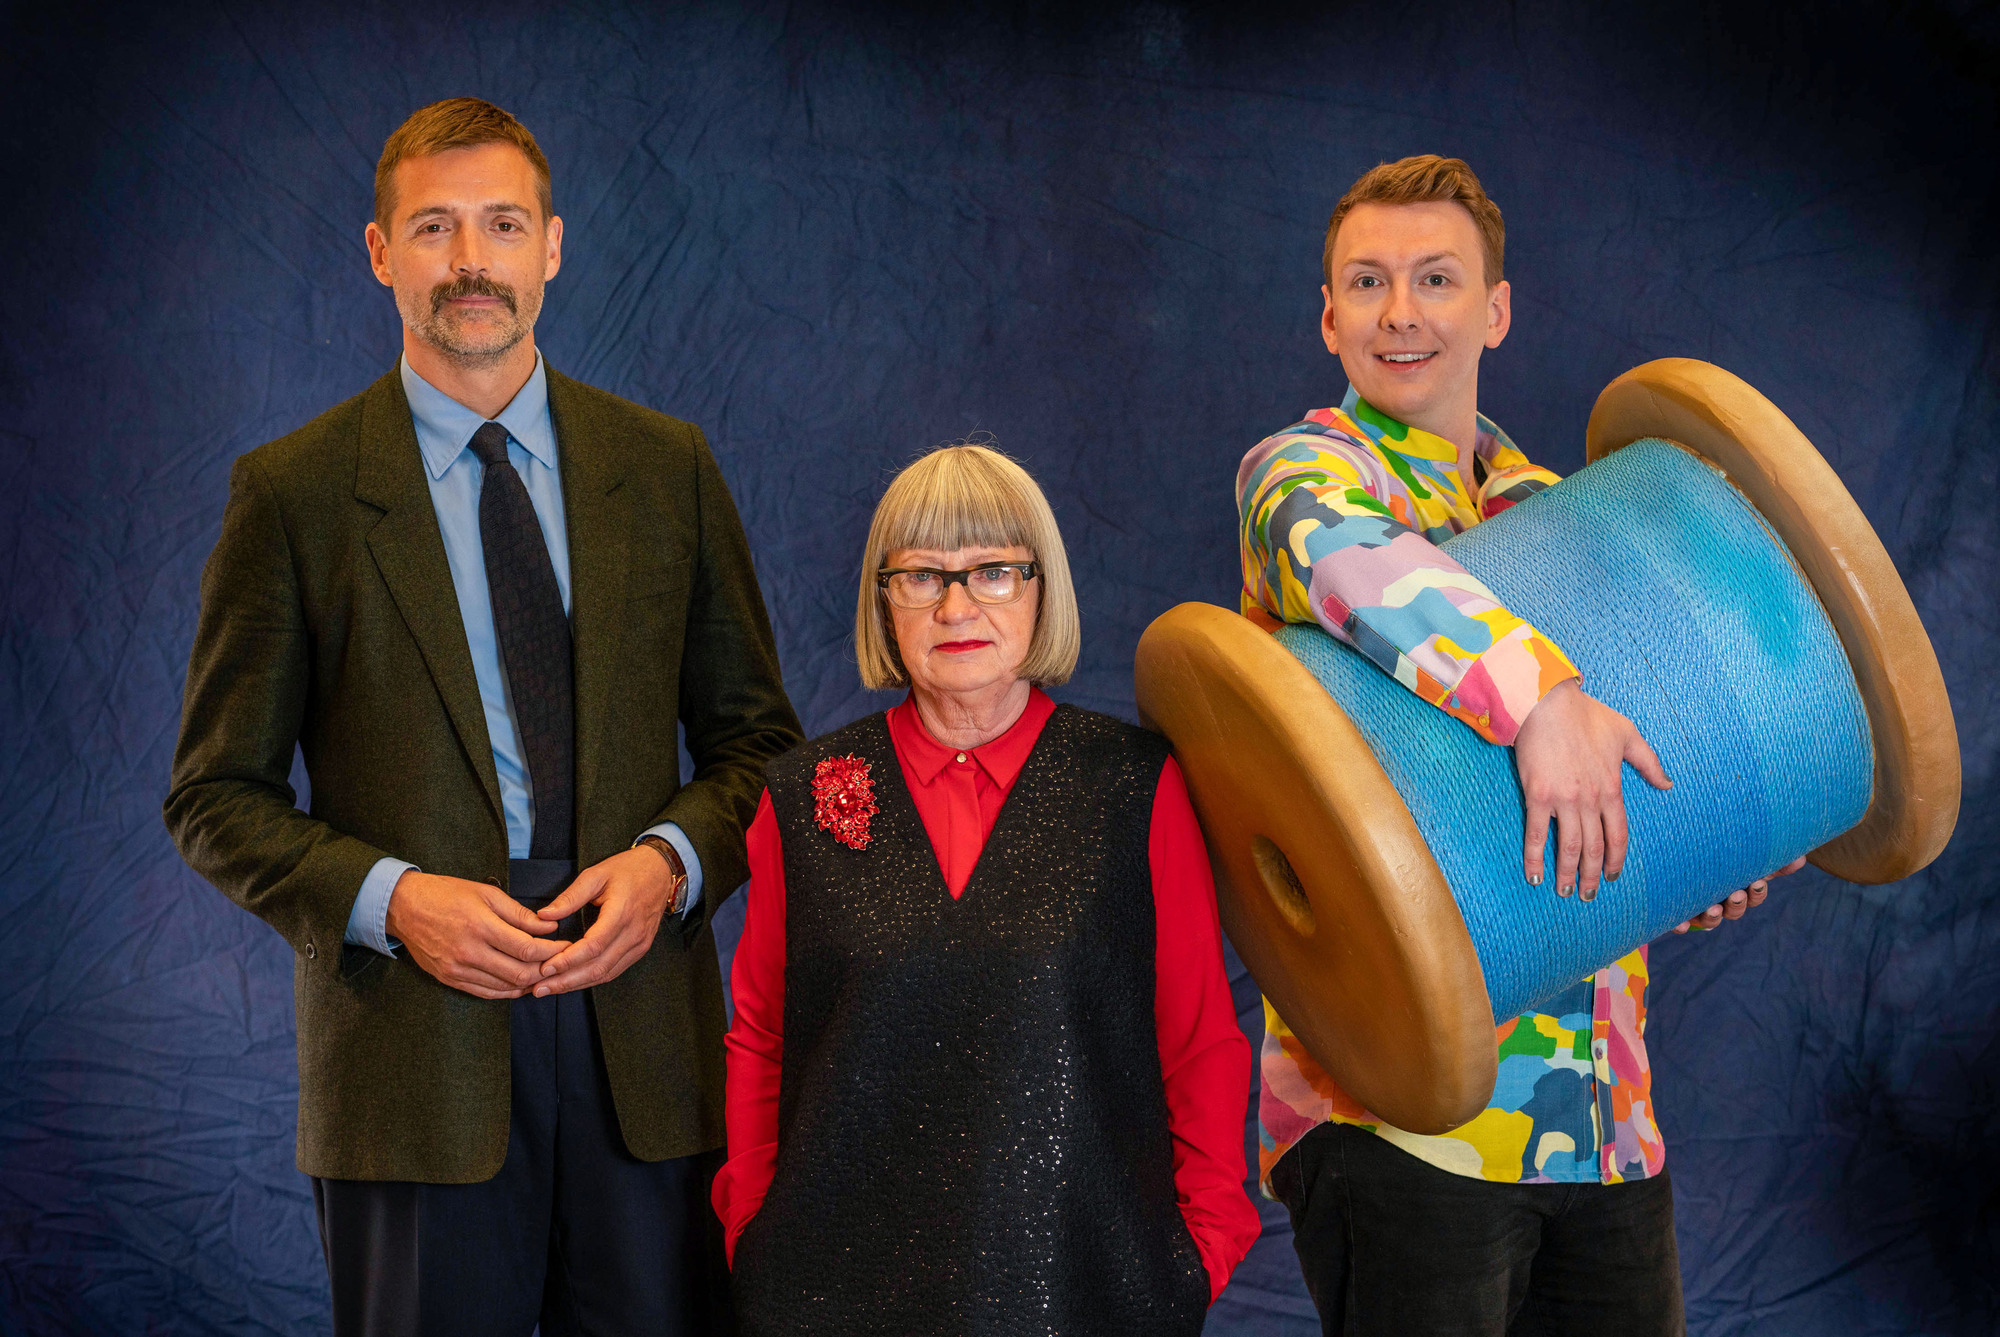 Presenters of The Great British Sewing Bee